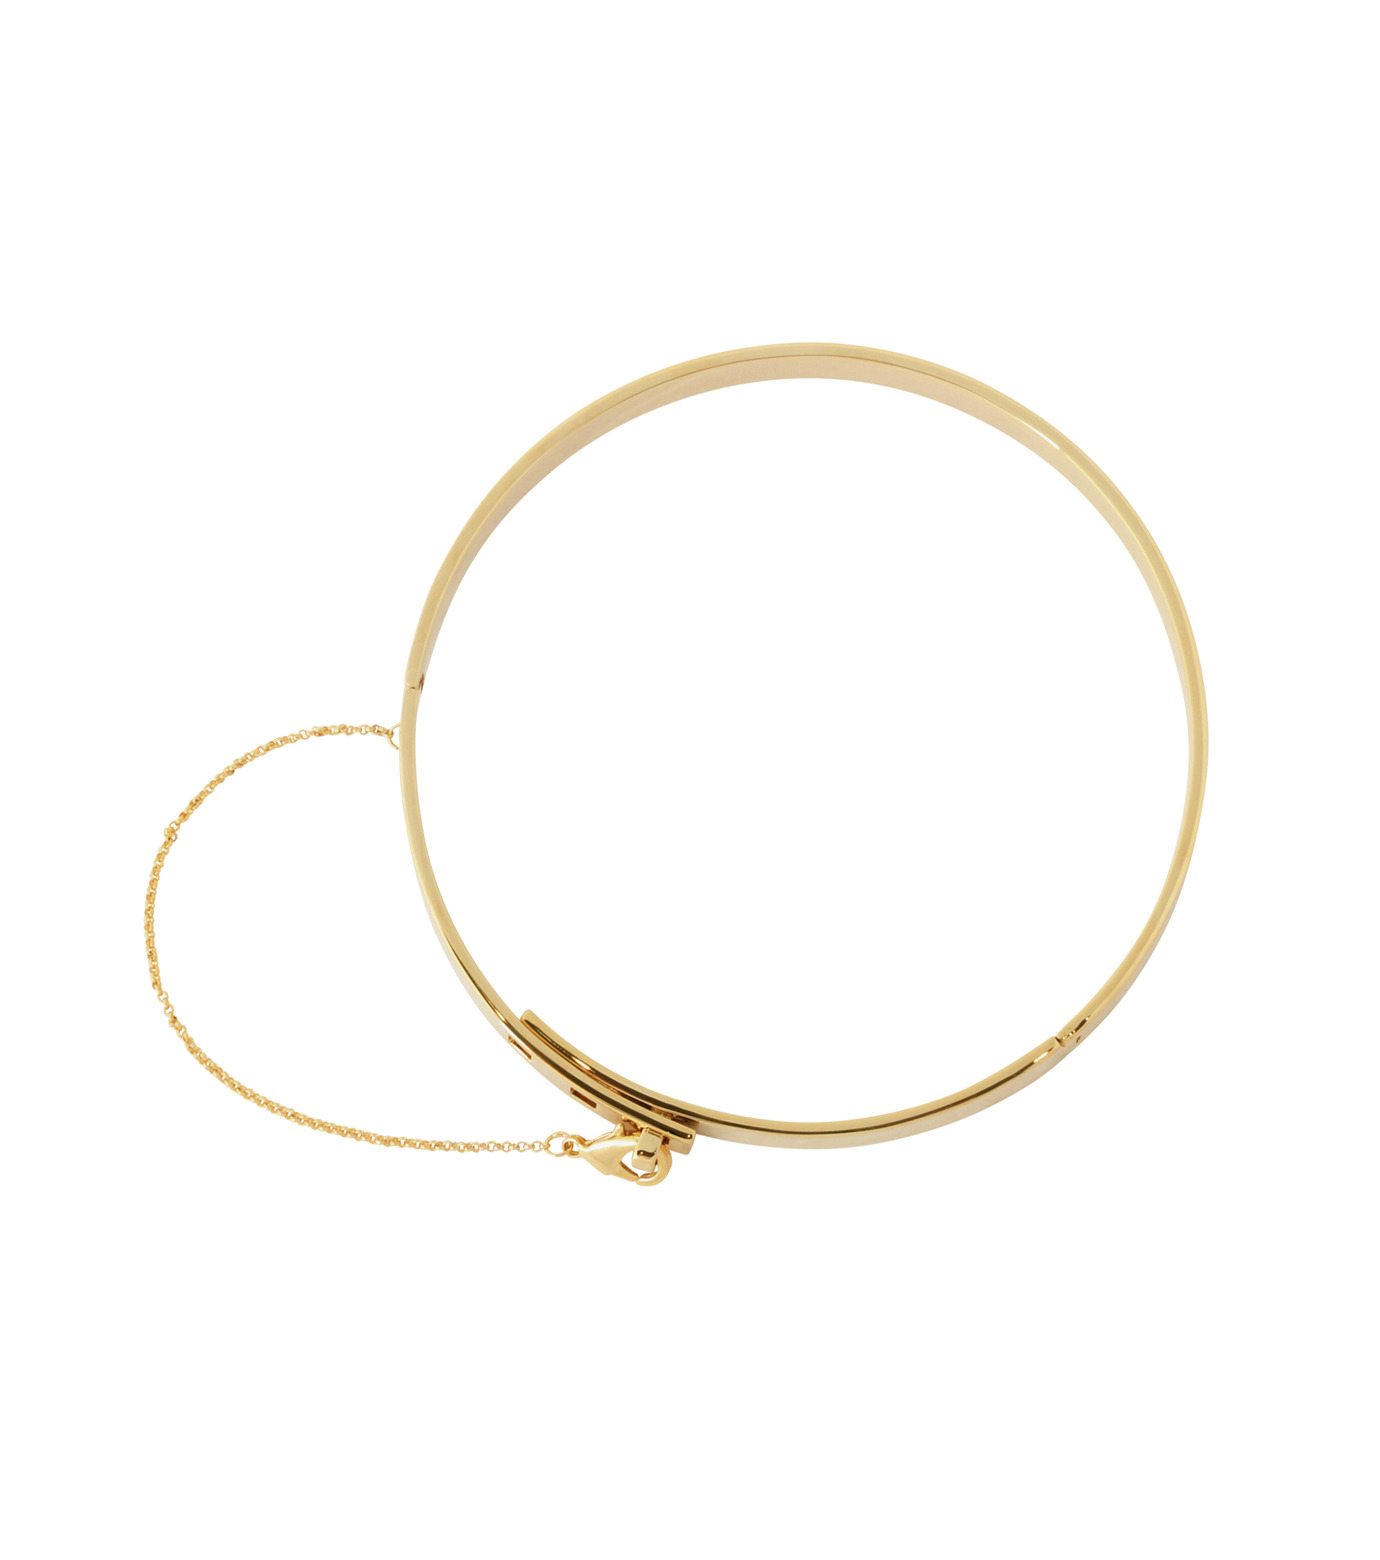 Eddie Borgo(エディ・ボルゴ)のSMALL SAFTY CHAIN CHOKER-GOLD(ネックレス/necklace)-CK1003-R-2 拡大詳細画像3